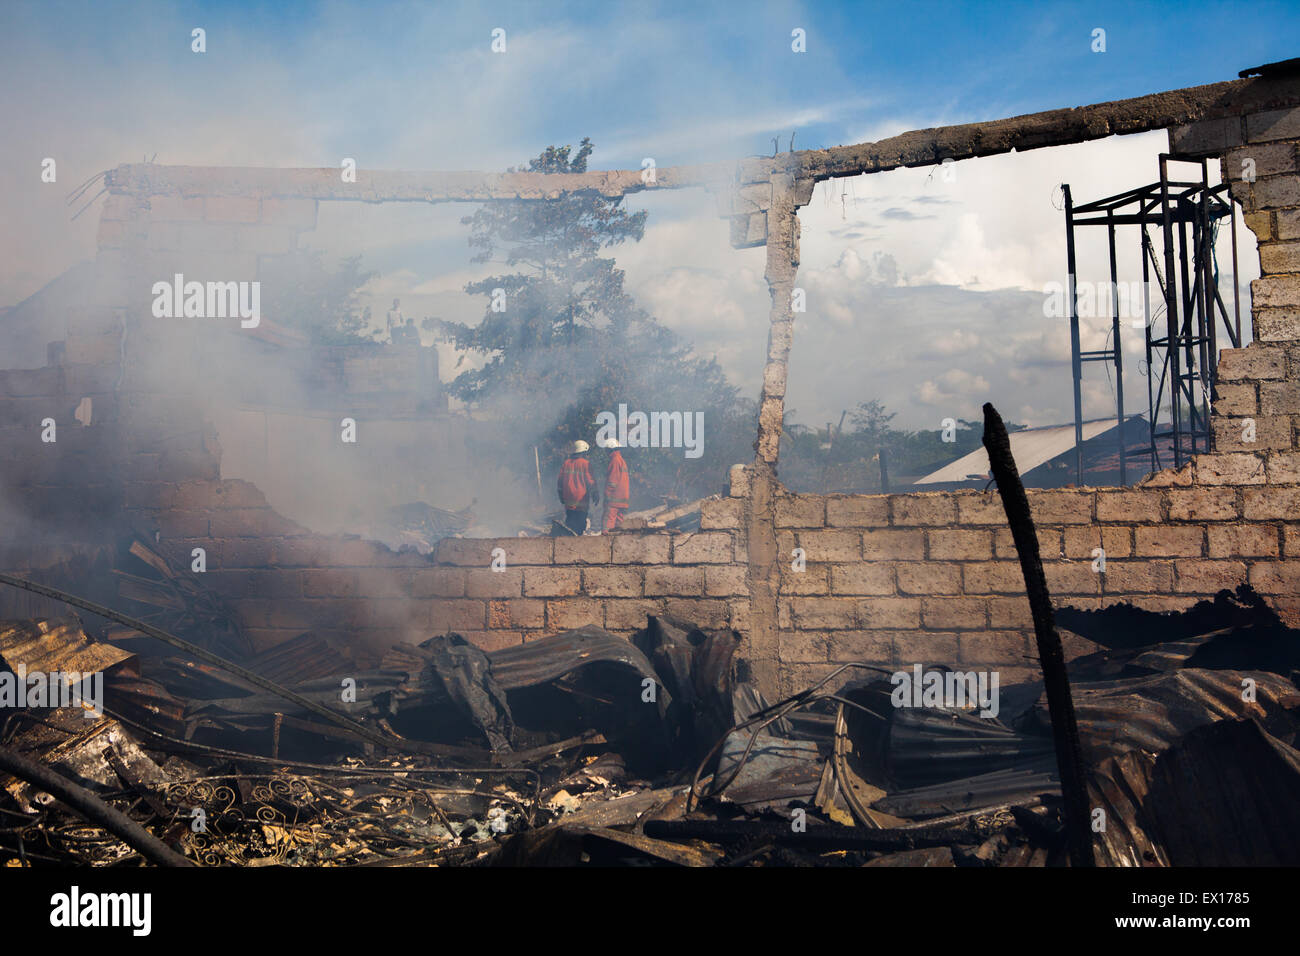 Scene of a warehouse after fire accident in Jakarta, Indonesia. - Stock Image